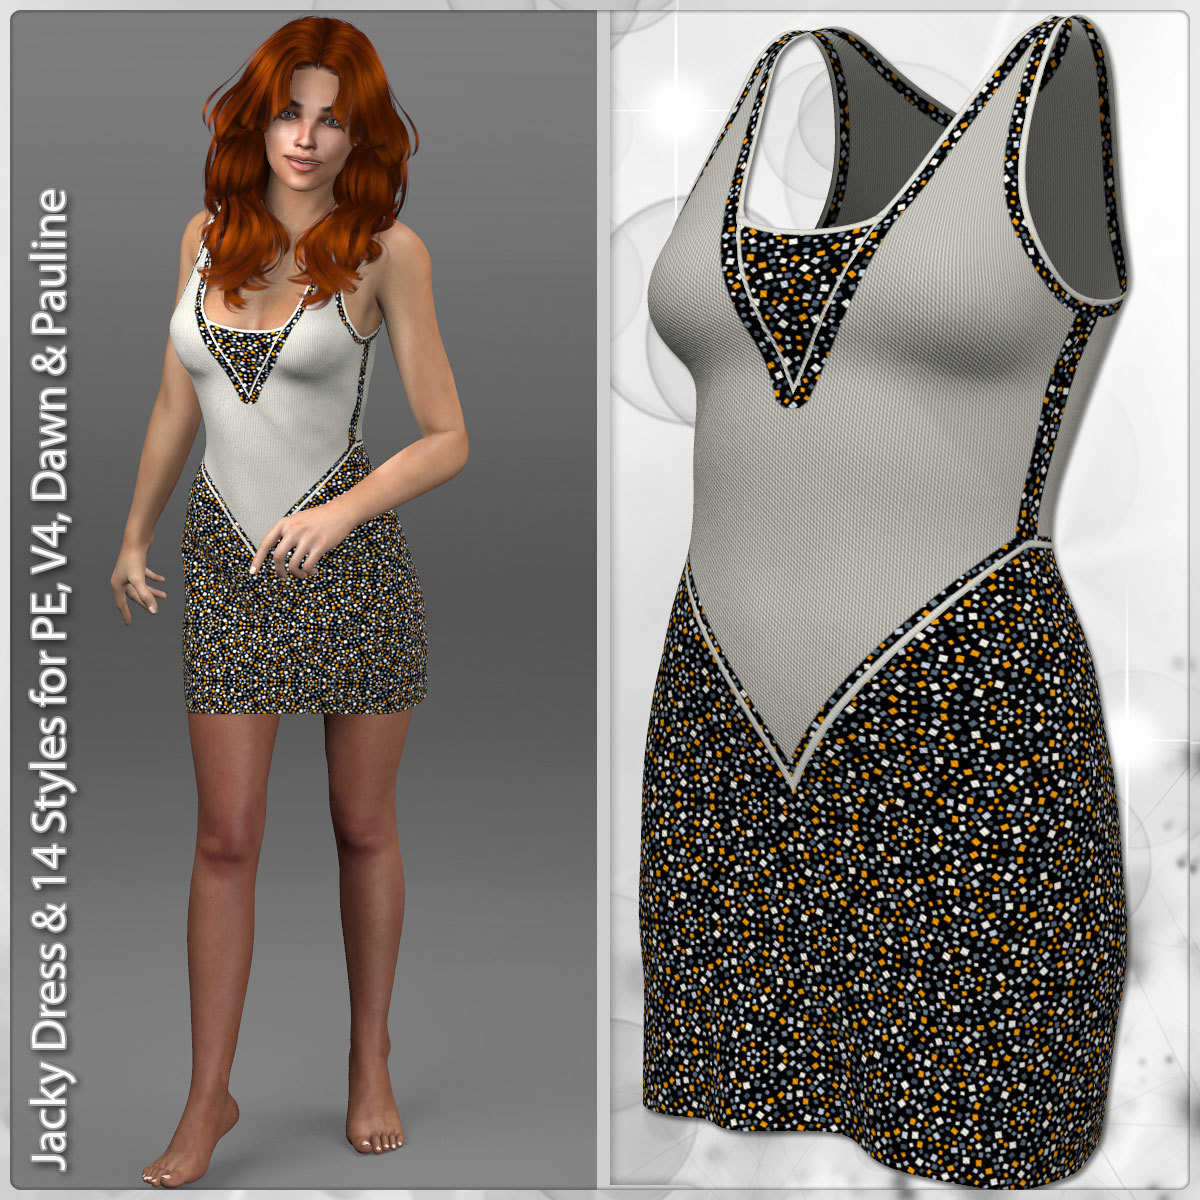 Jacky Dress and 14 Styles for PE, V4, Dawn and Pauline